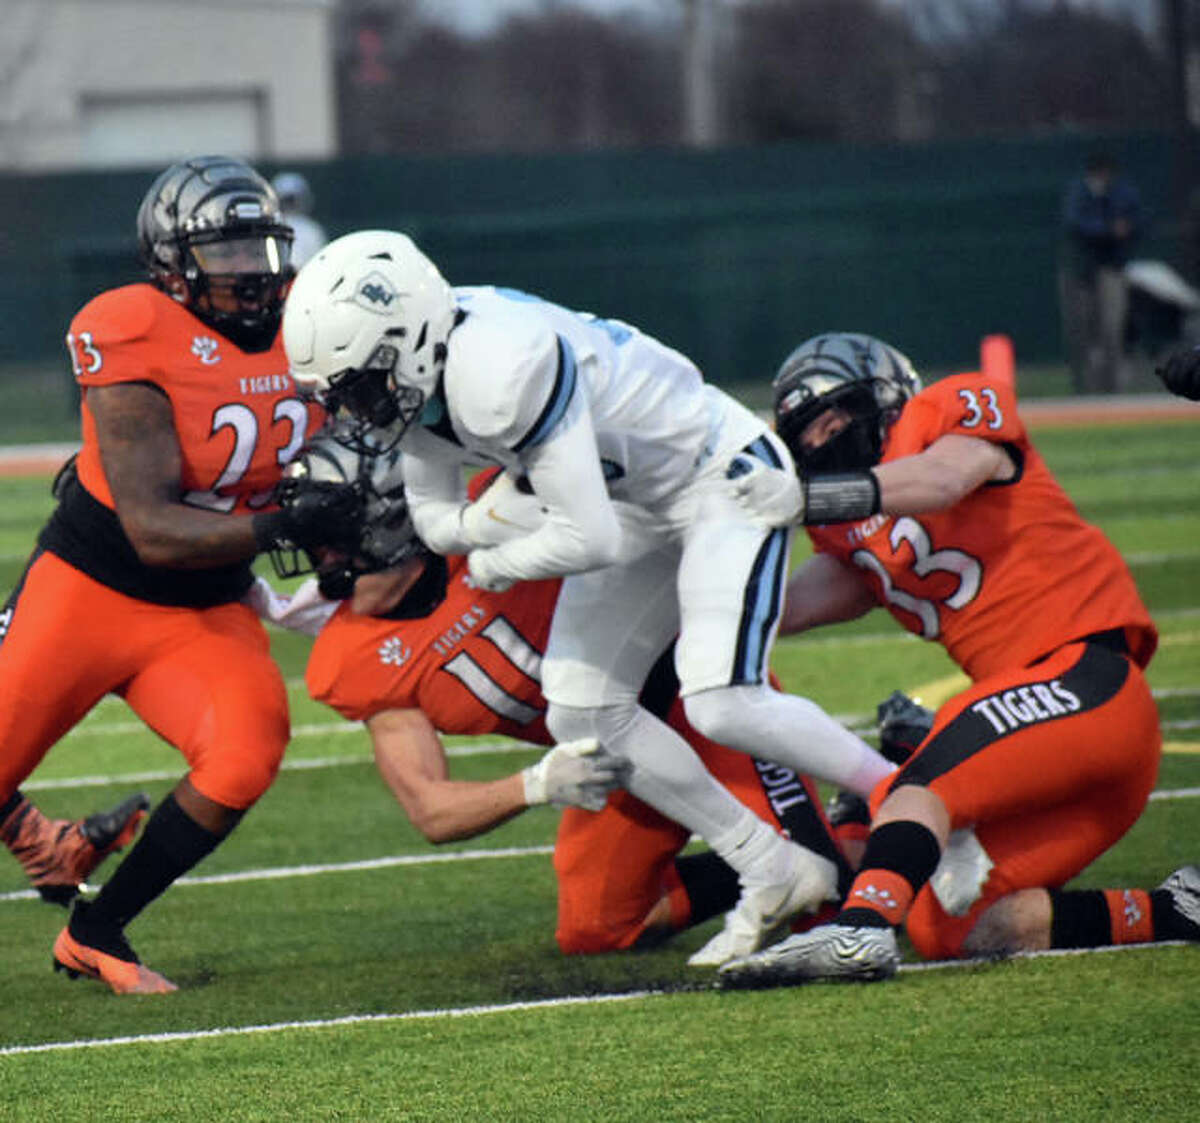 Edwardsville's Cameron Lovett, left, Mason Ahlers, center, and Dalton Brown, right, combine to tackle the Belleville East ball carrier.